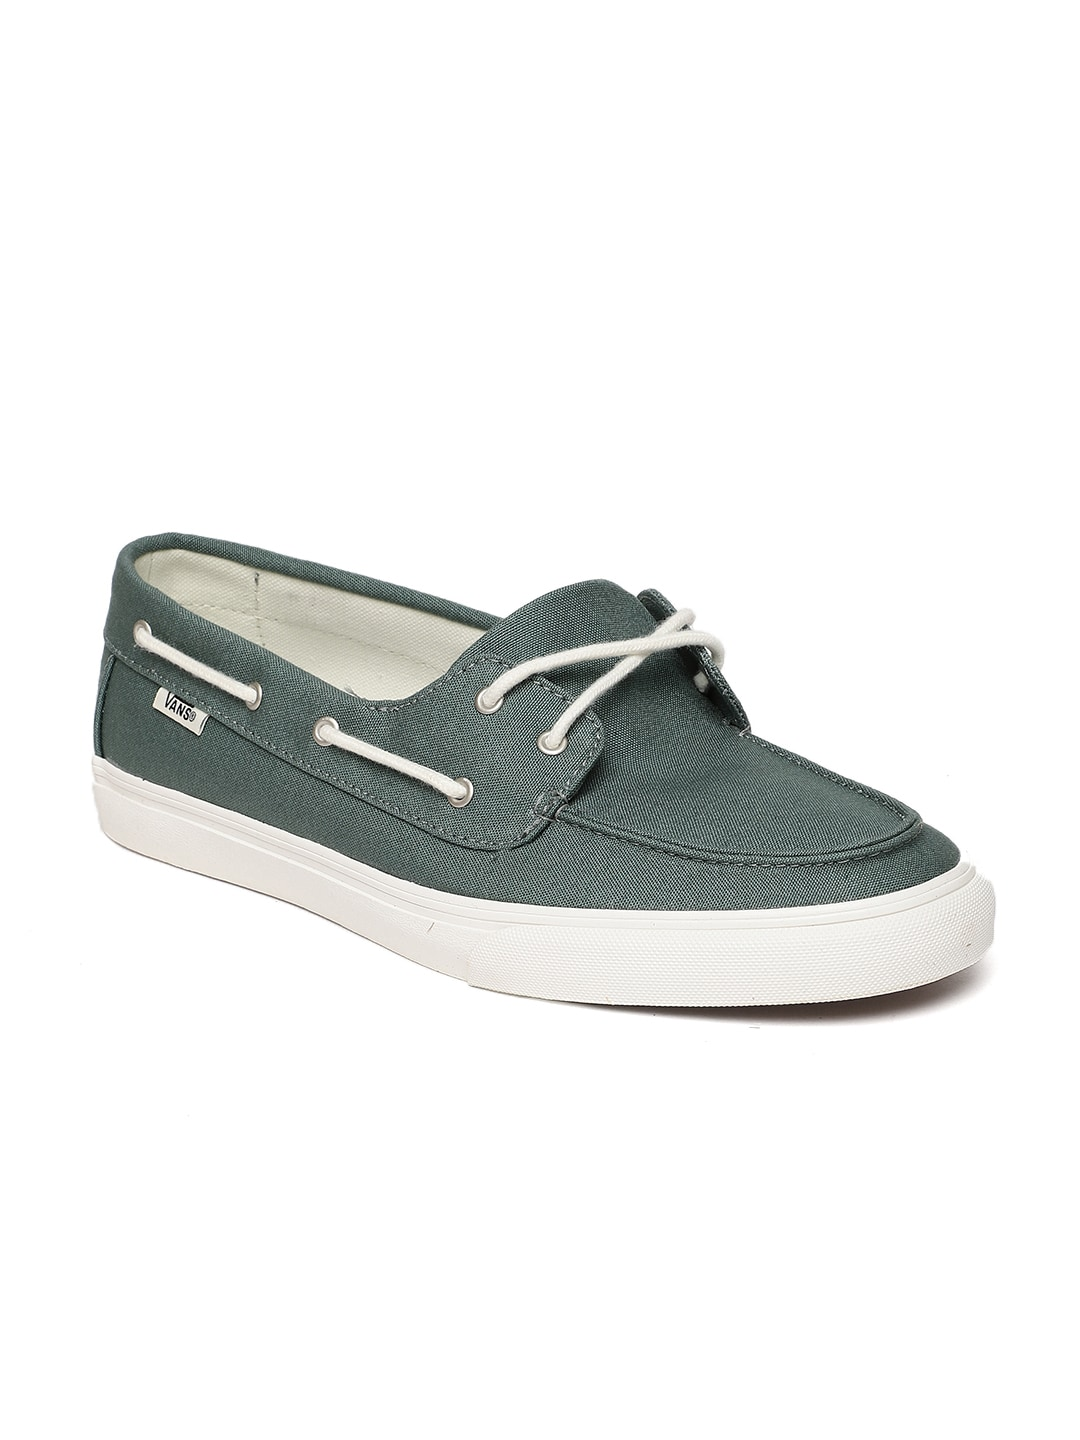 b50b5f05931d03 Shoes for Men - Buy Mens Shoes Online at Best Price